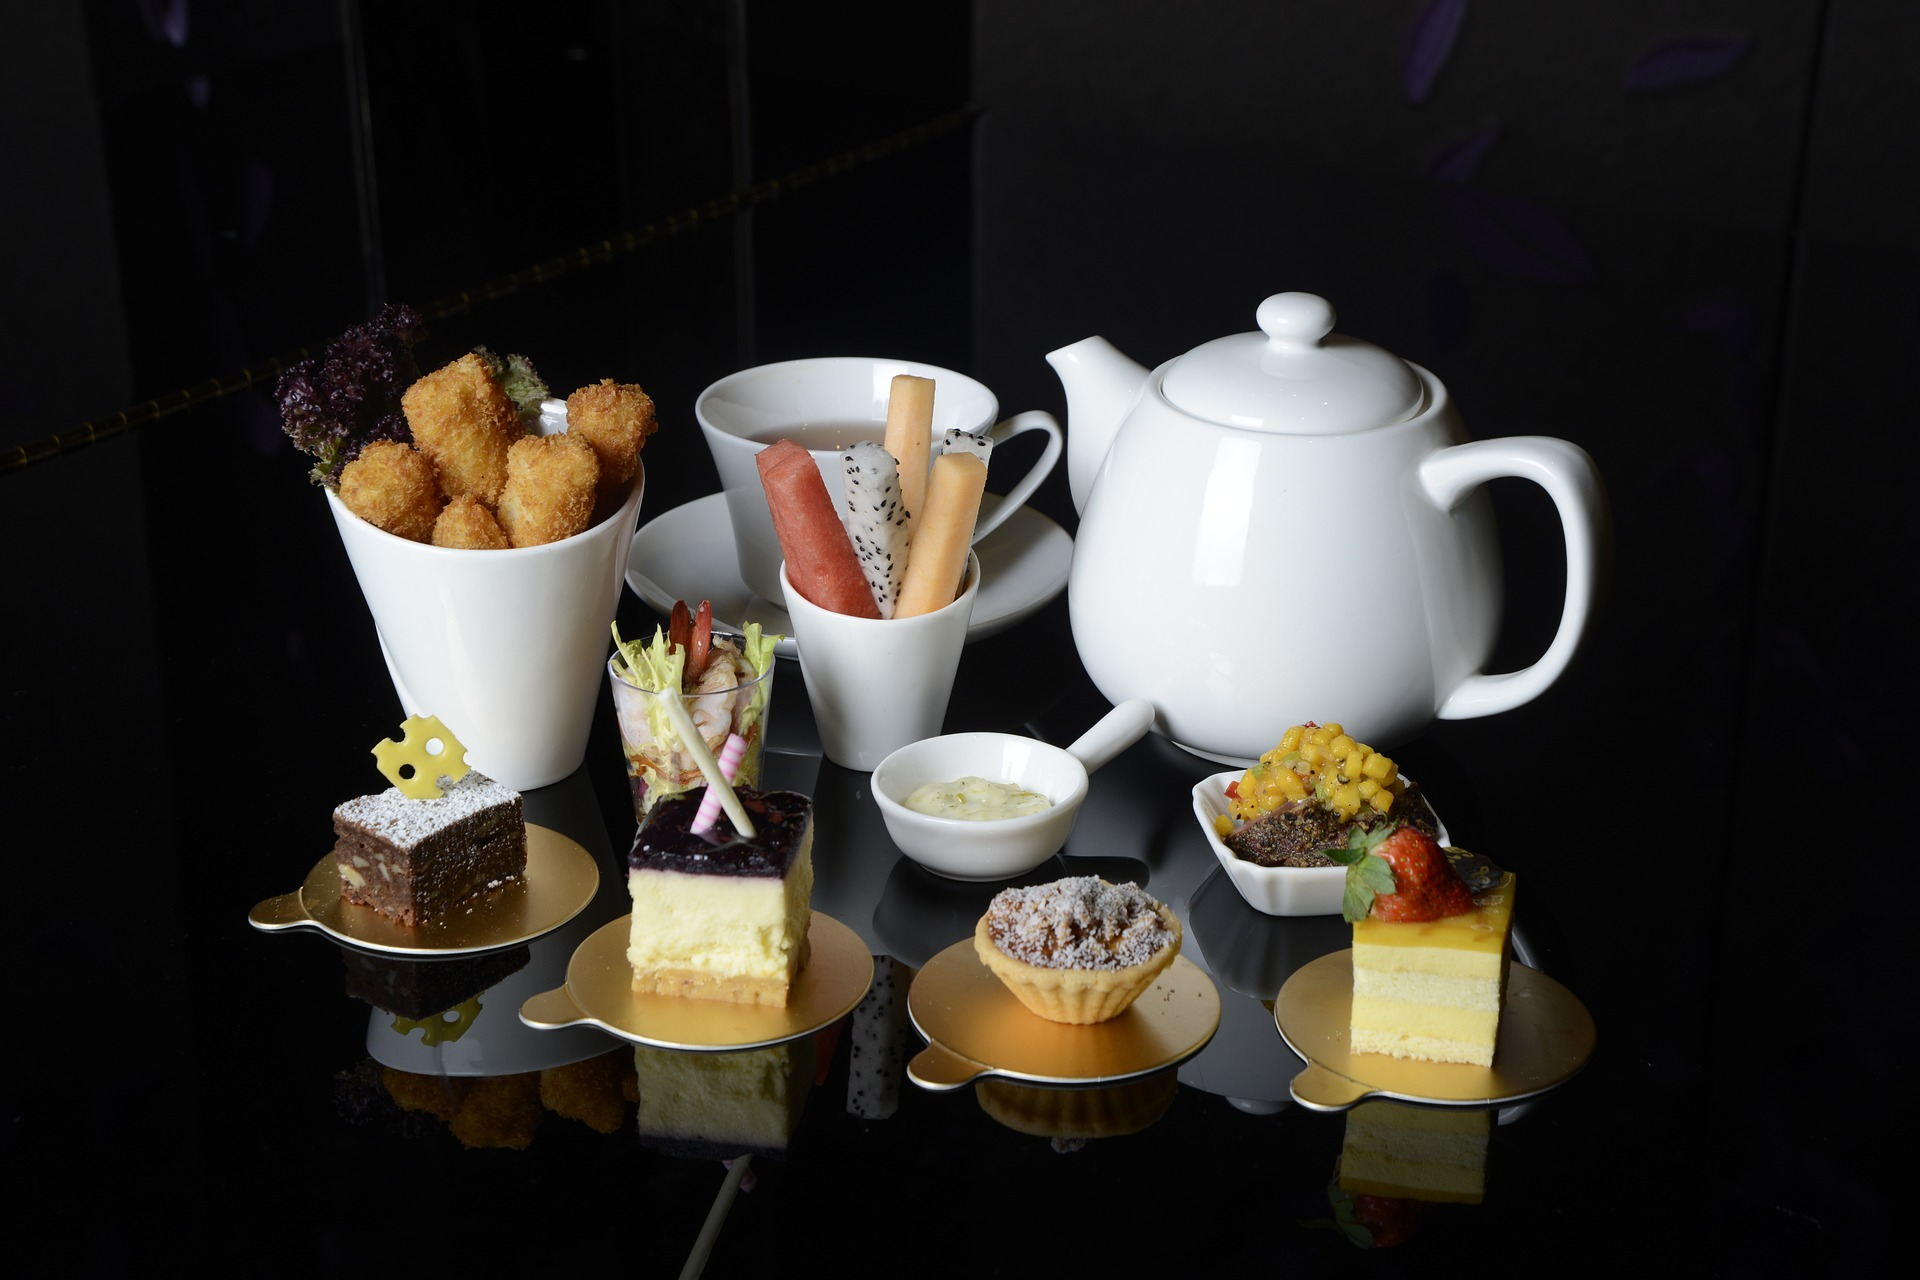 What Is the Difference Between Afternoon Tea and High Tea?